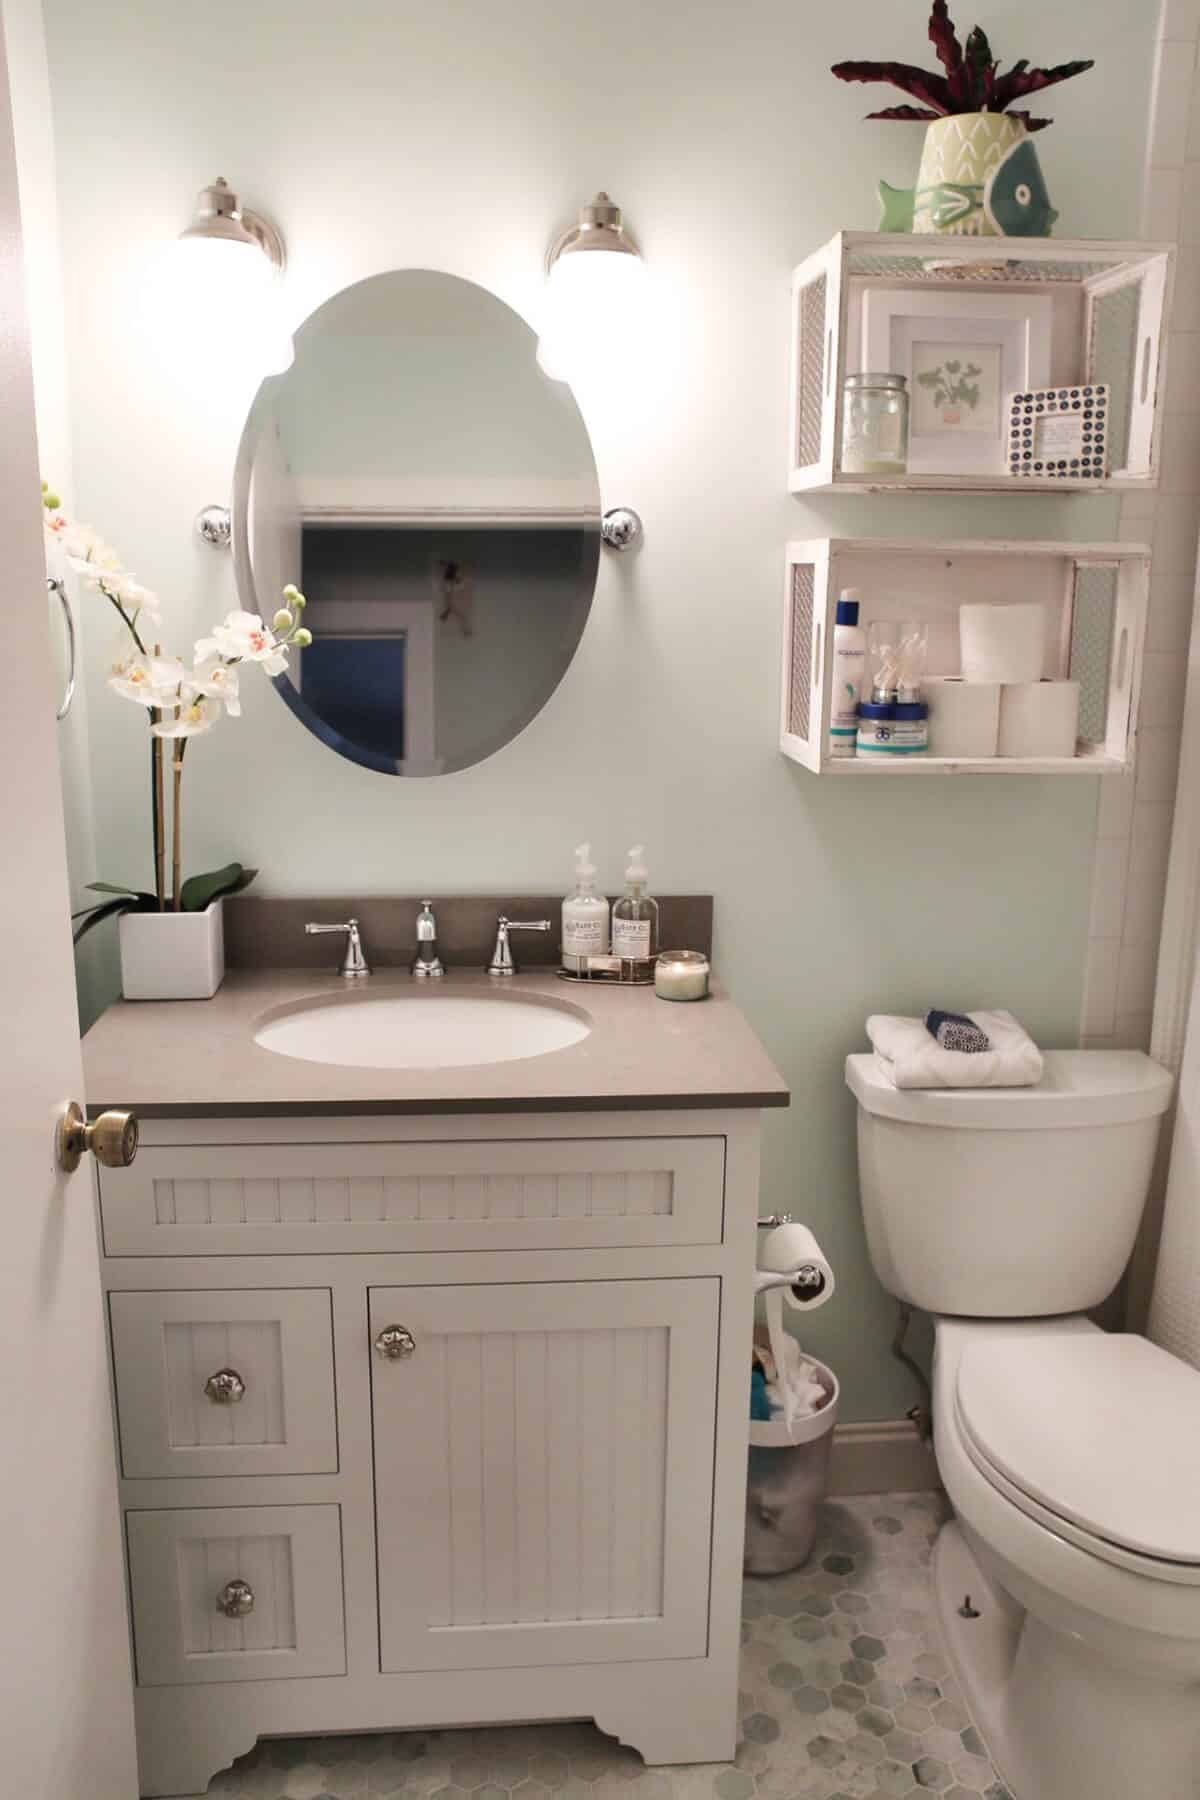 Best Bathroom Colors For Resale 2021